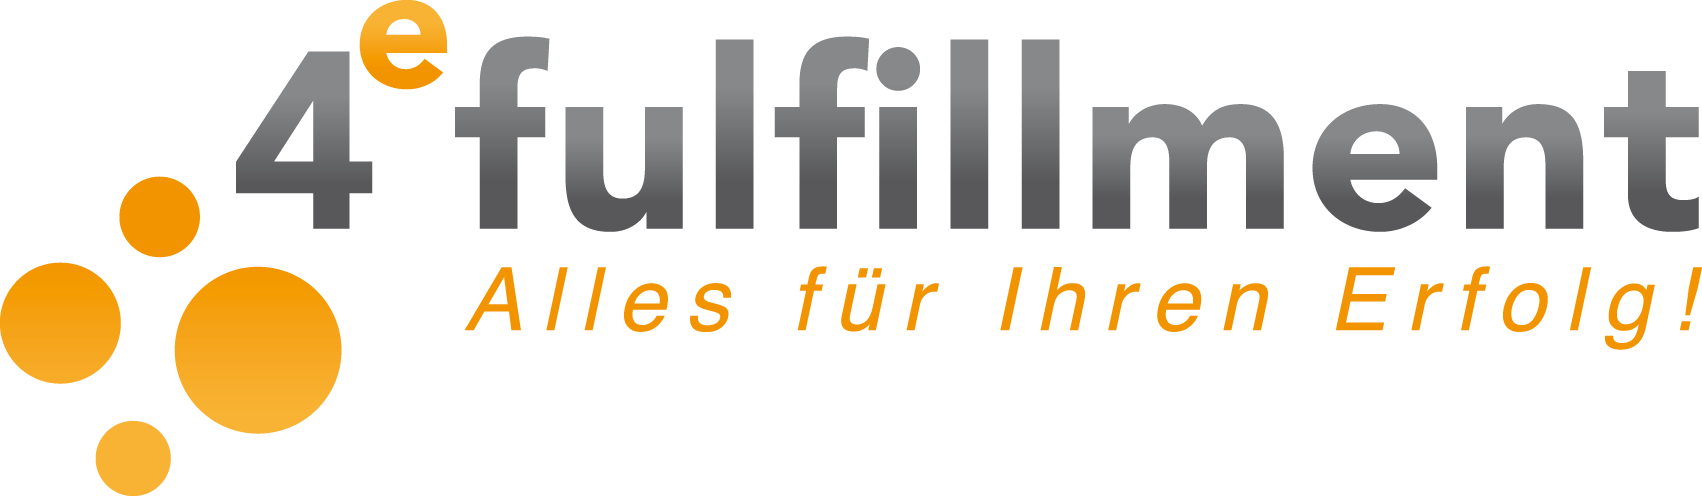 4e fulfillment GmbH & Co. KG